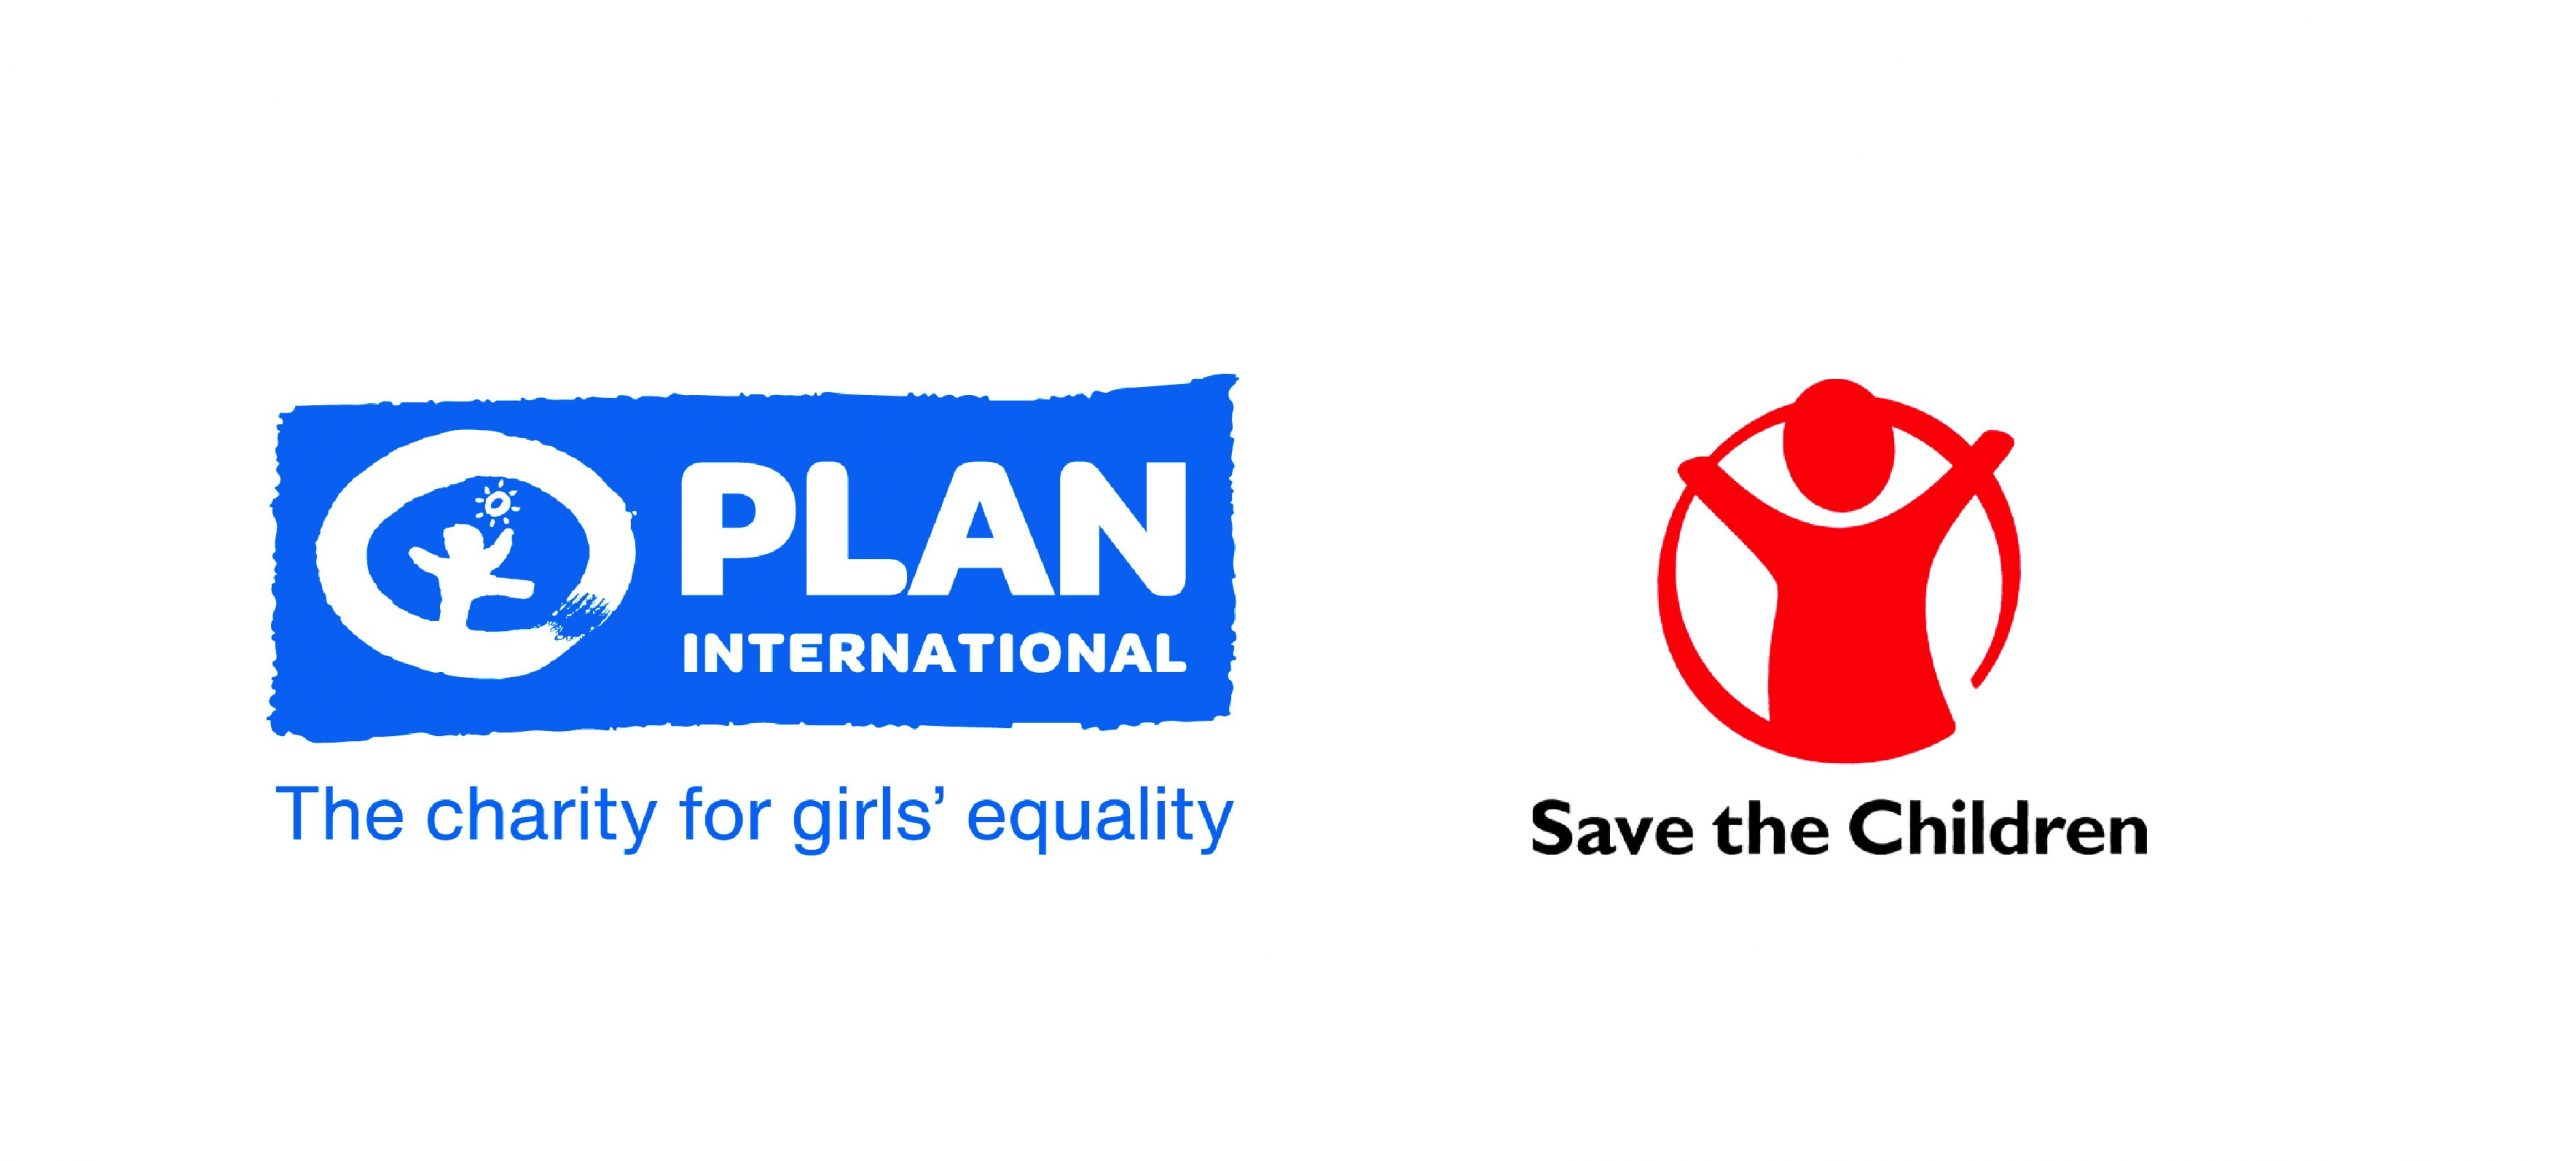 Impact partners include save the children and plan international